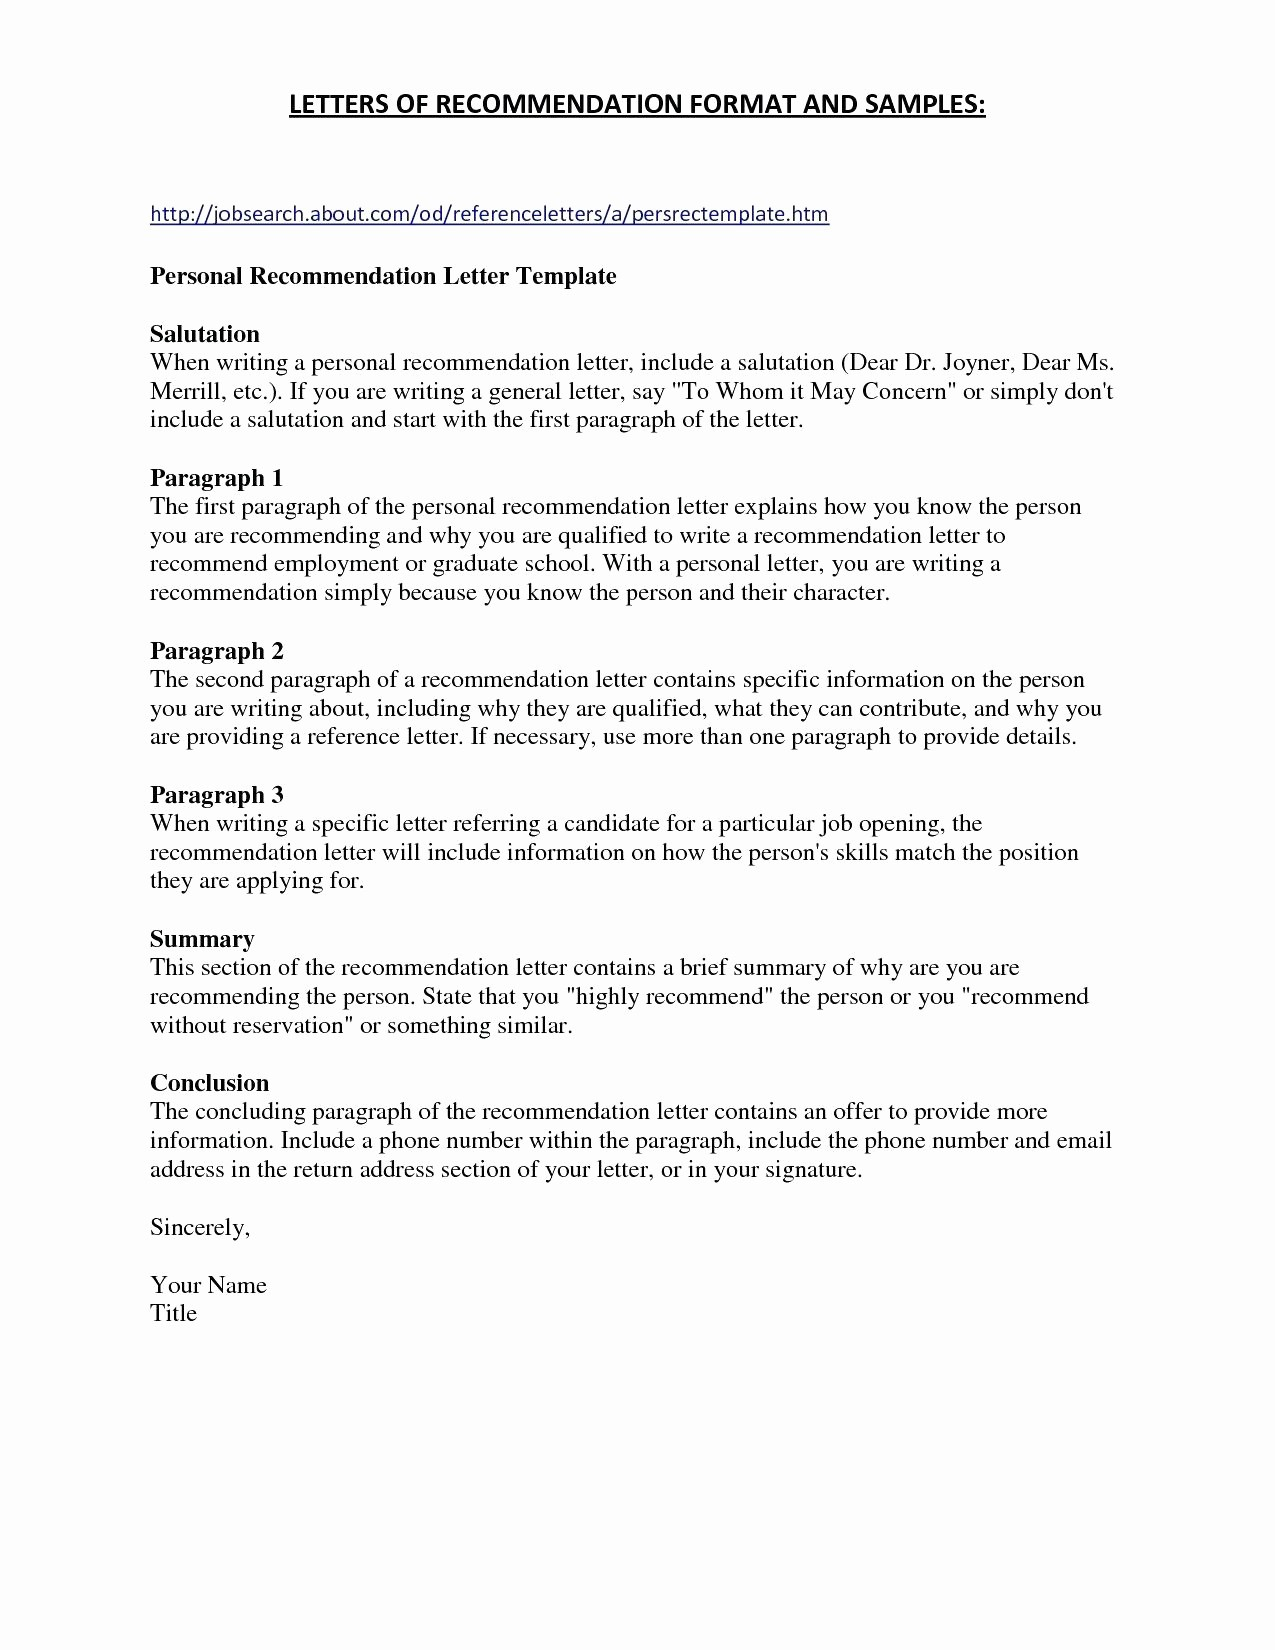 How To Make A Business Contract Template New Business Contract Pertaining To How To Make A Business Contract Template